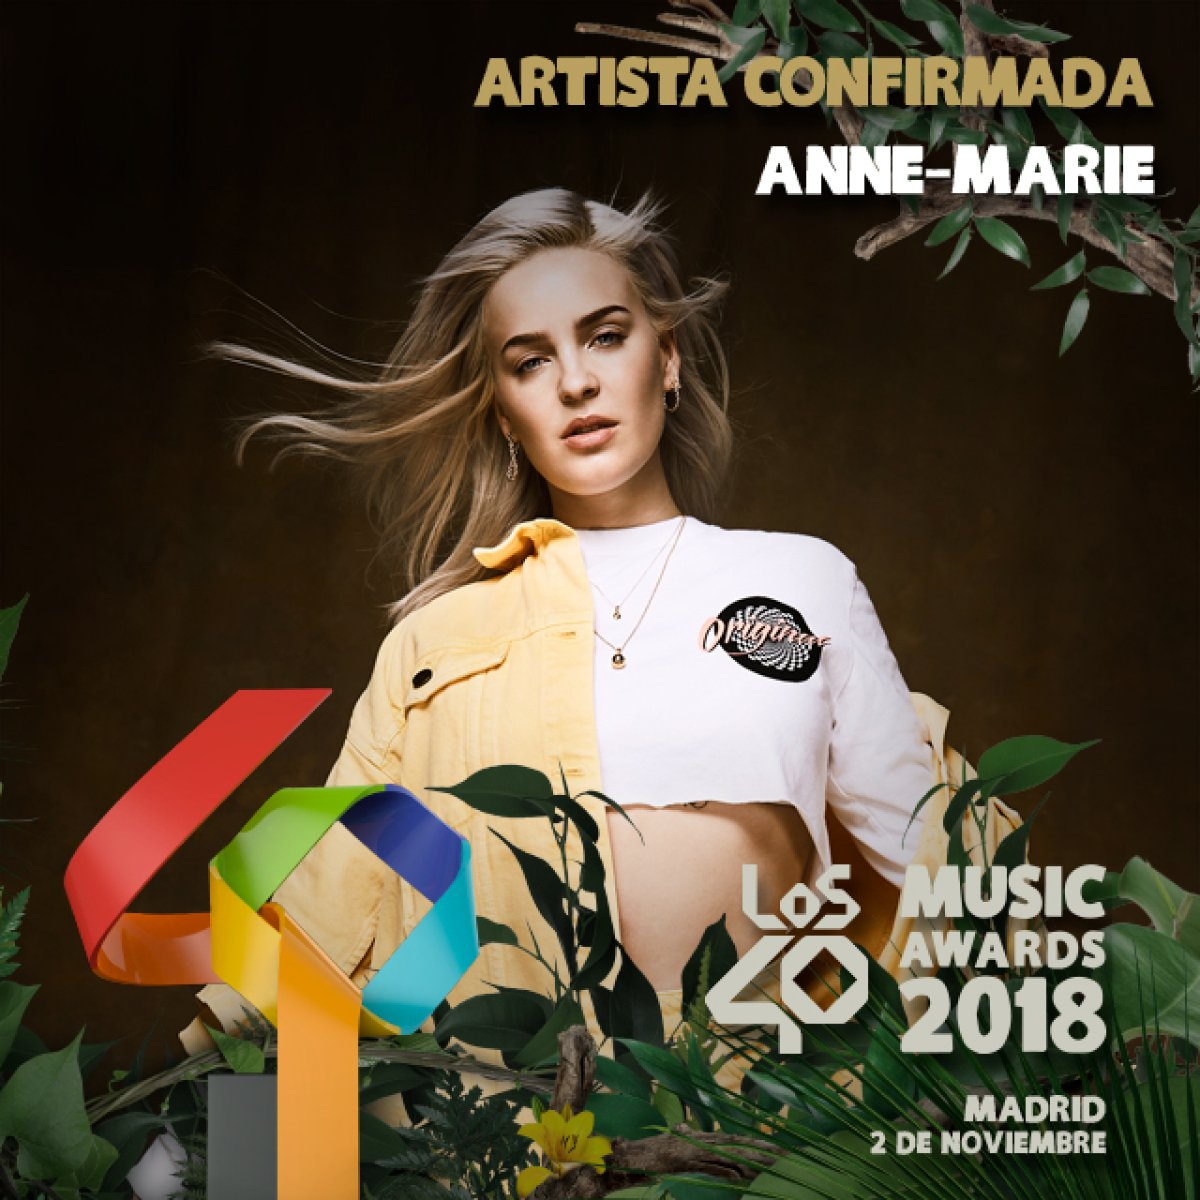 ¡Estos son los shows confirmados para LOS40 Music Awards!